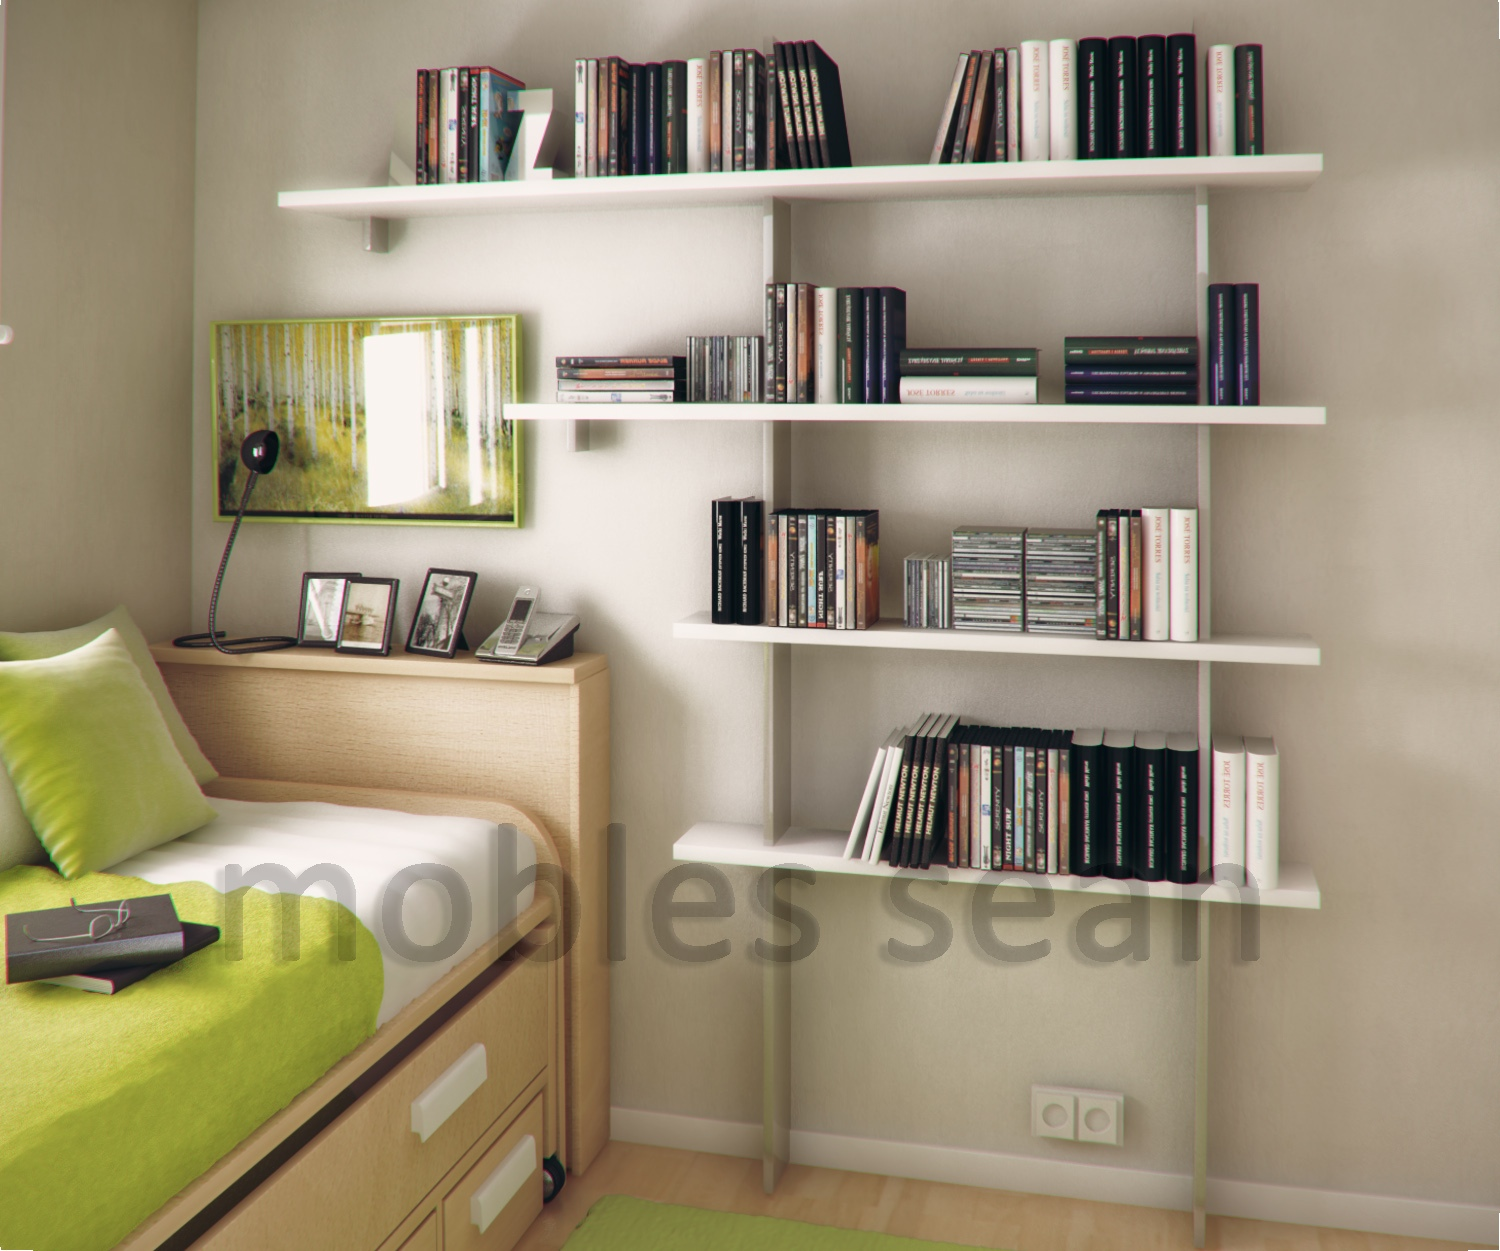 Space saving designs for small kids rooms - Small bookcases for small spaces design ...